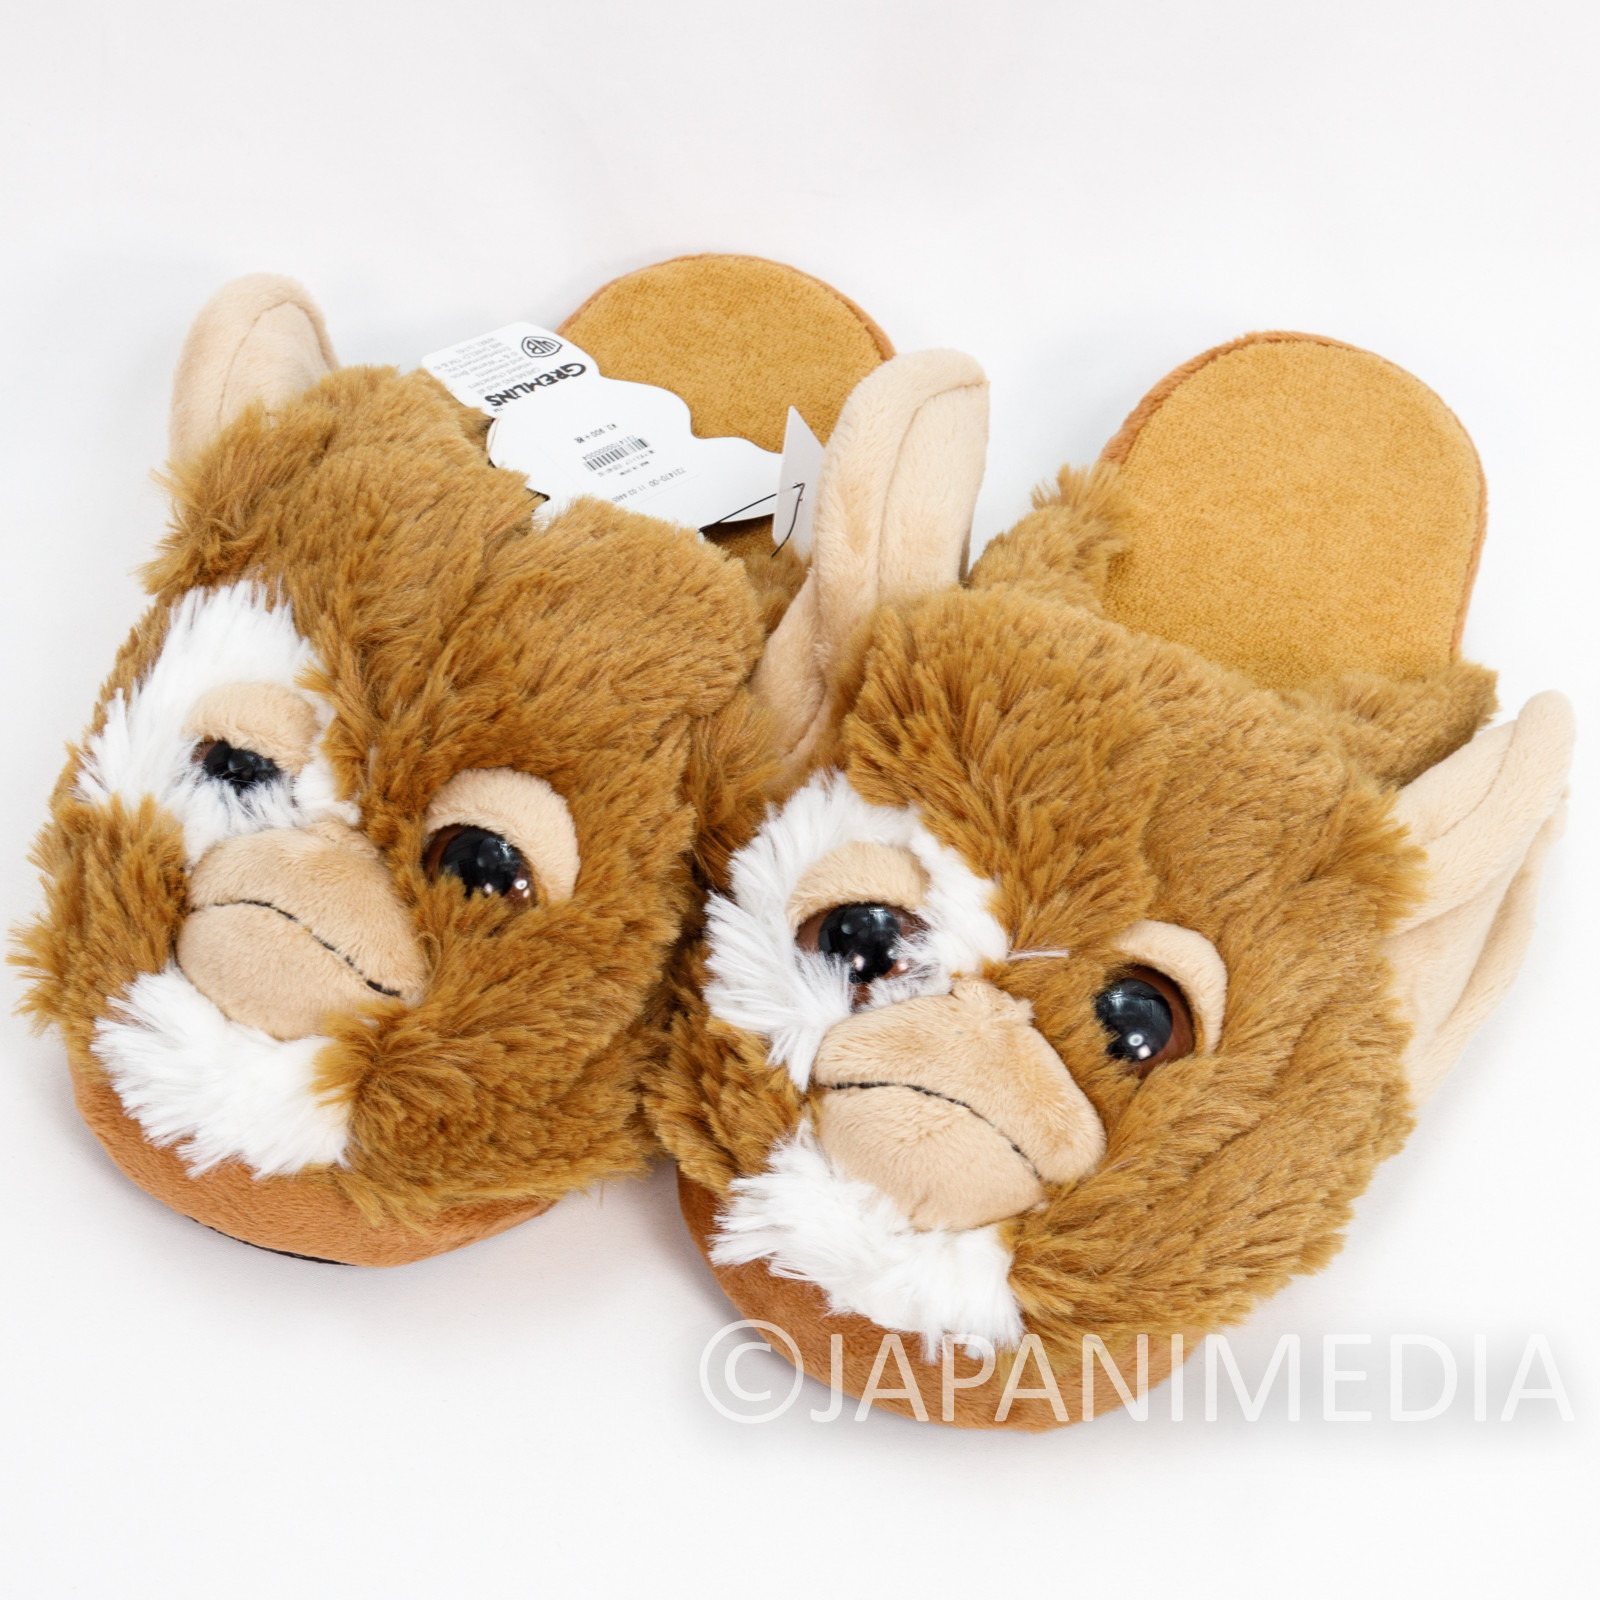 Gremlins Gizmo Fece Plush Doll Slippers niko and... JAPAN